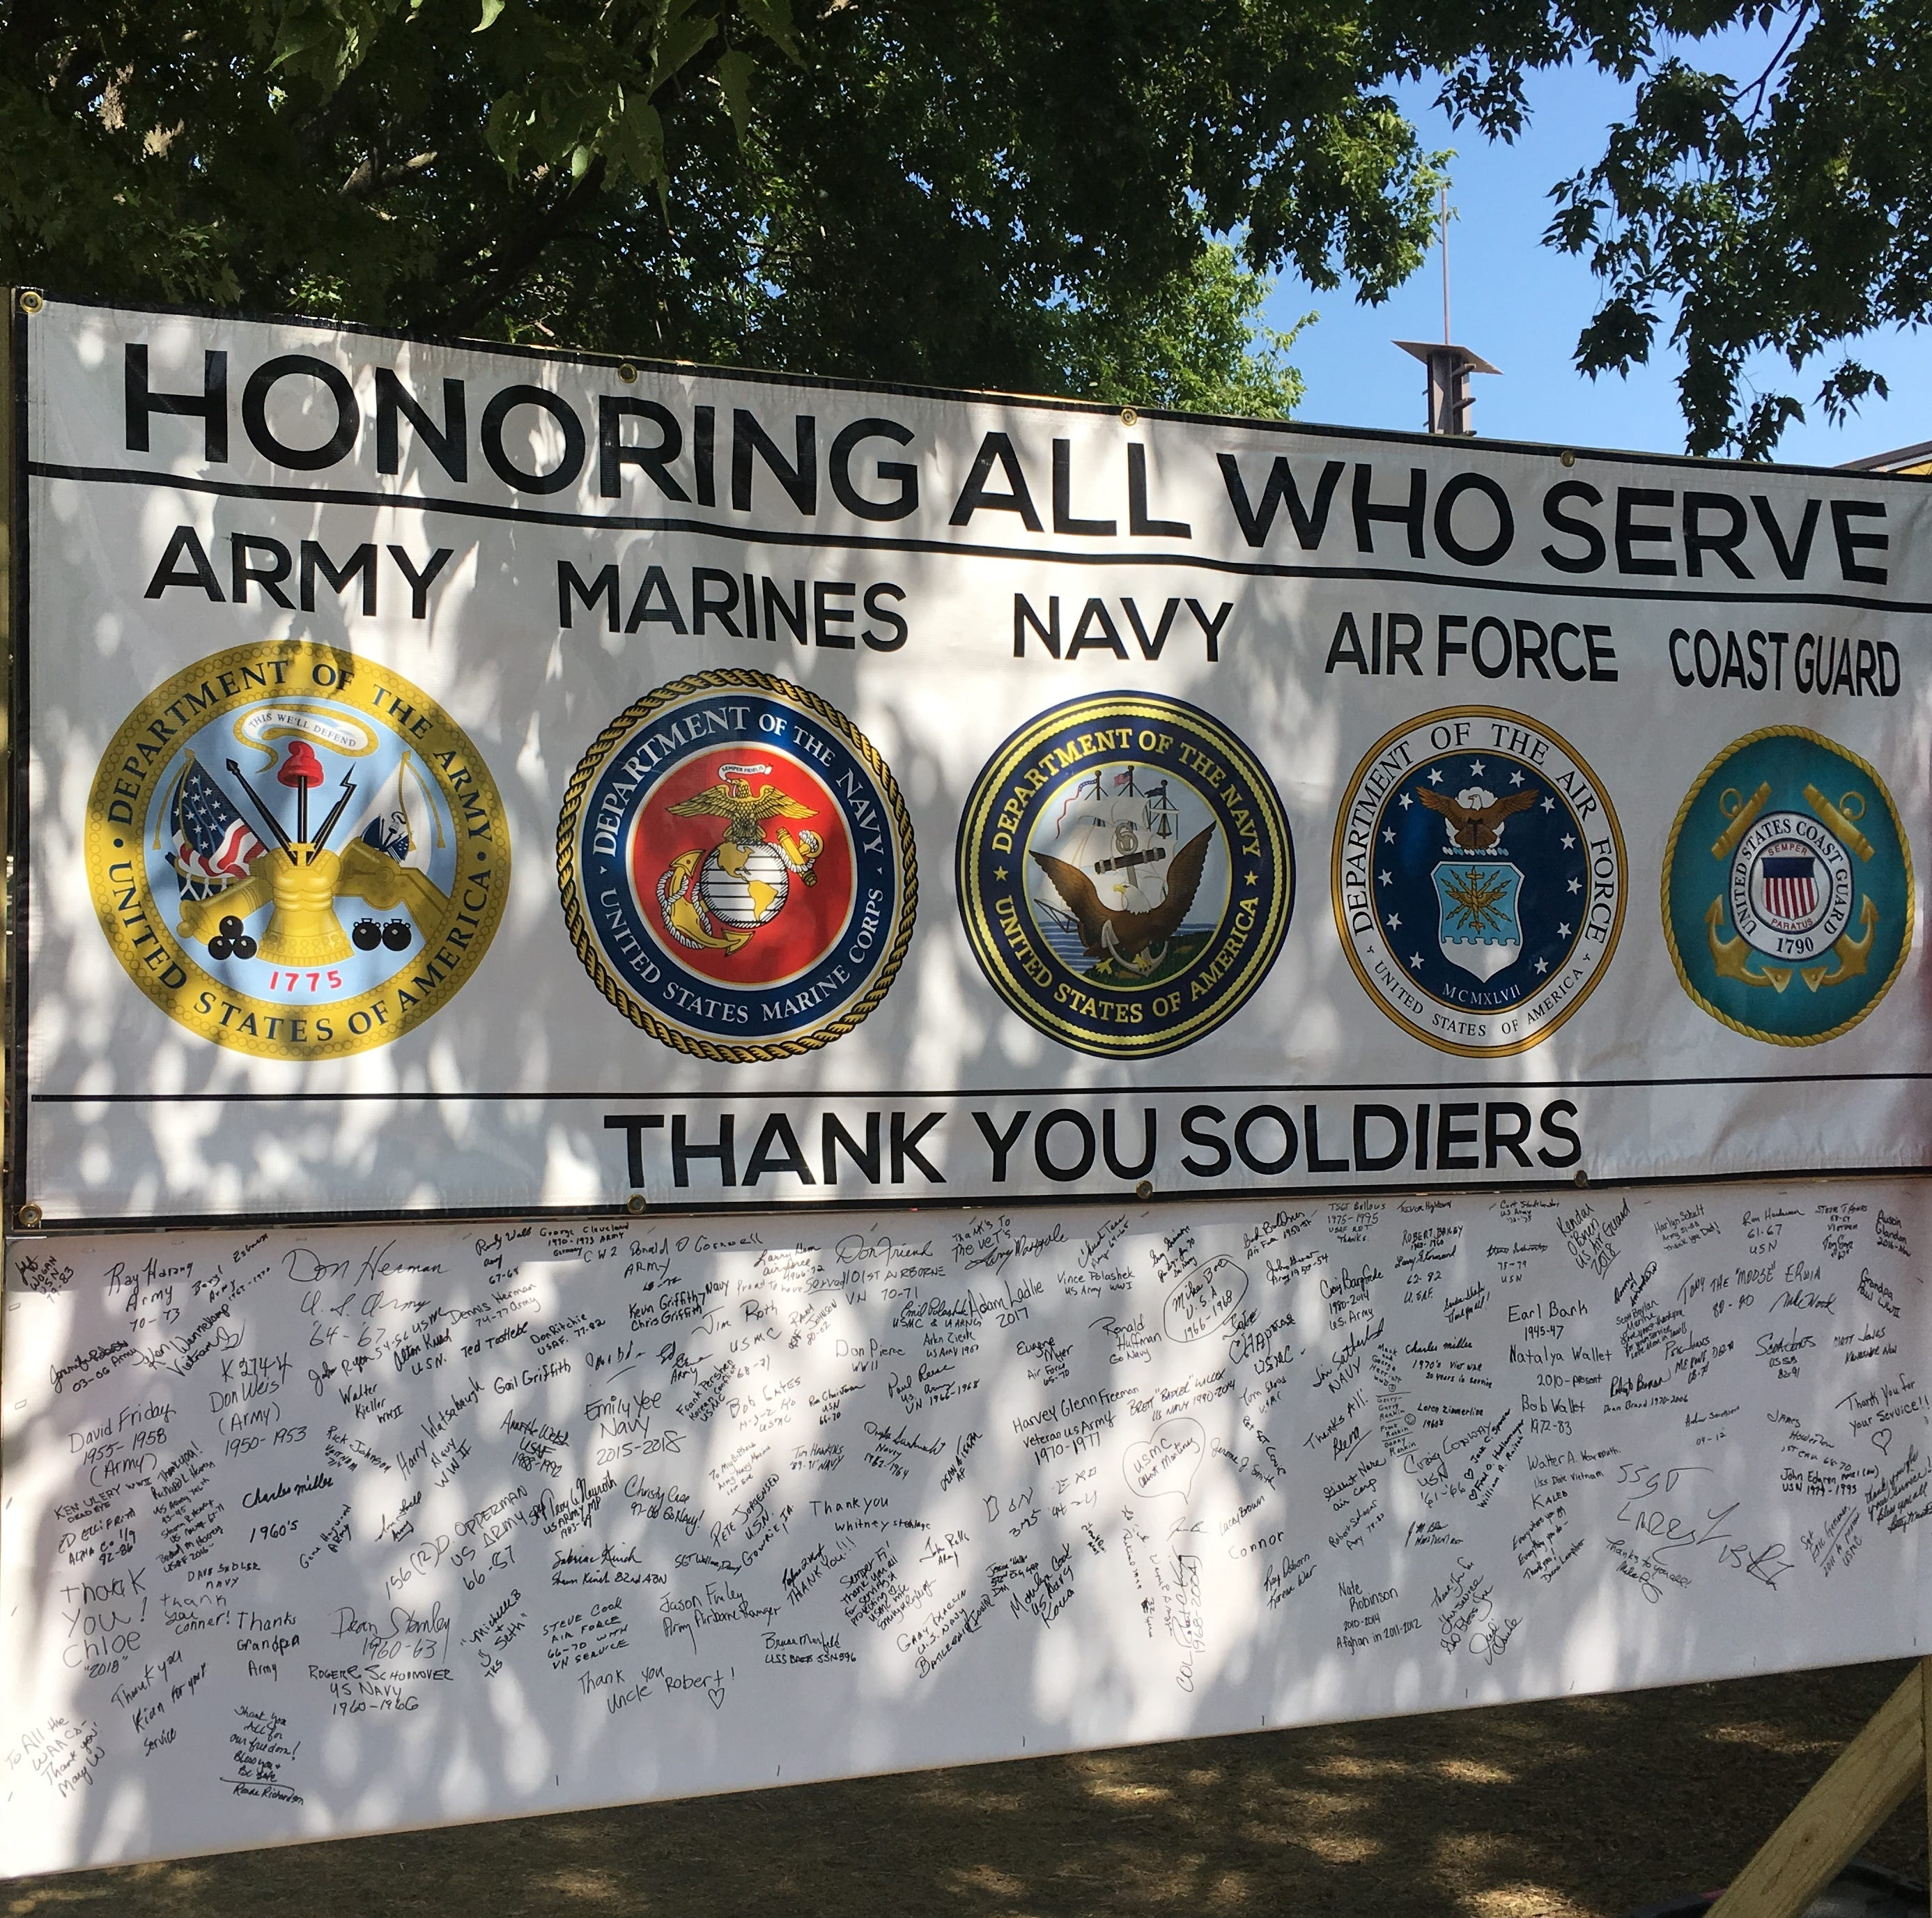 This sign was displayed Monday  at the Iowa State Fair to thank military veterans.  Members of the Iowa Democratic Party's veterans caucus said they were barred from marching as a group by an official representing Republican Gov. Kim Reynolds' administration, even though they have marched together in the past.